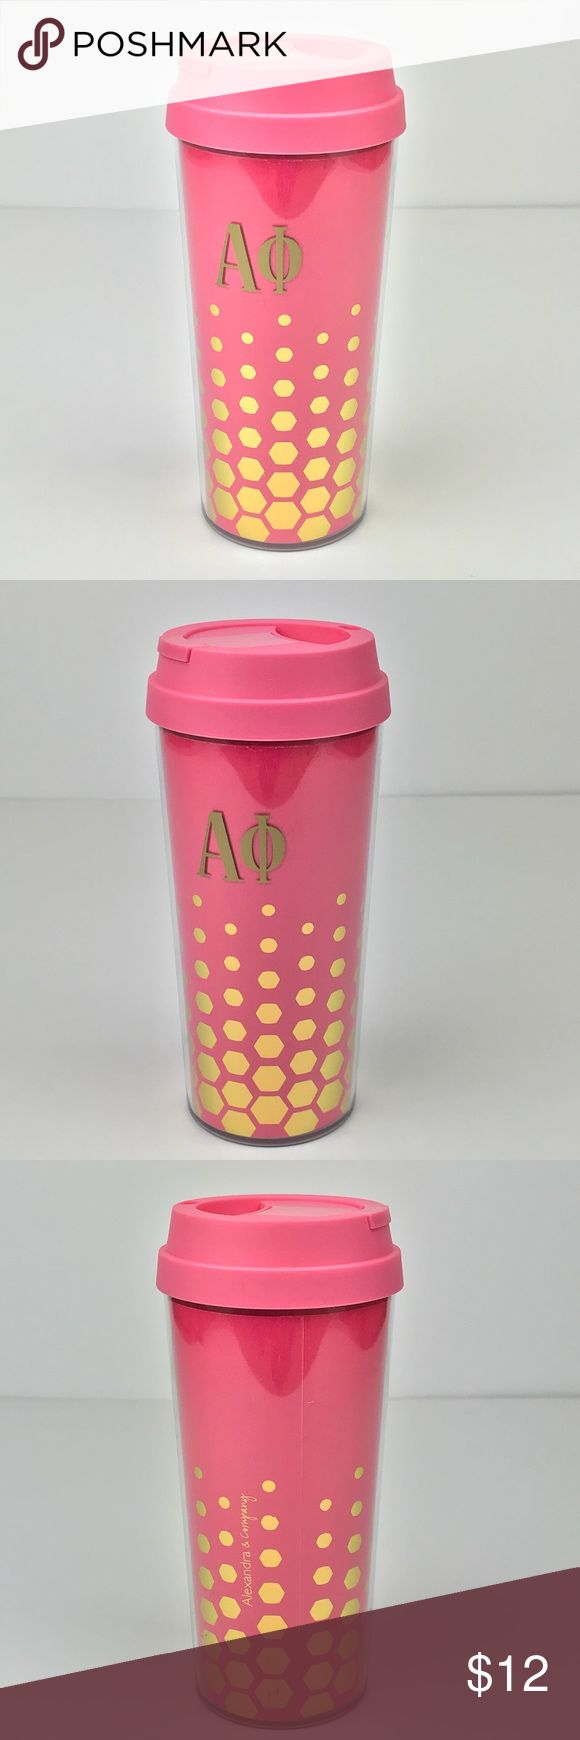 Alpha Phi Pink Gold Insulated Coffee Mug Tumbler Brand New  Officially Licensed  Alpha Phi Travel Coffee Cup  Pink with Gold Dots  Please see photos and ask any questions prior to purchasing.   Multiple available, message me if you'd like to make a bulk order for your sisters! :)  Check out my closet for additional Alpha Phi items. Bundle multiple listings for a private offer! Accessories